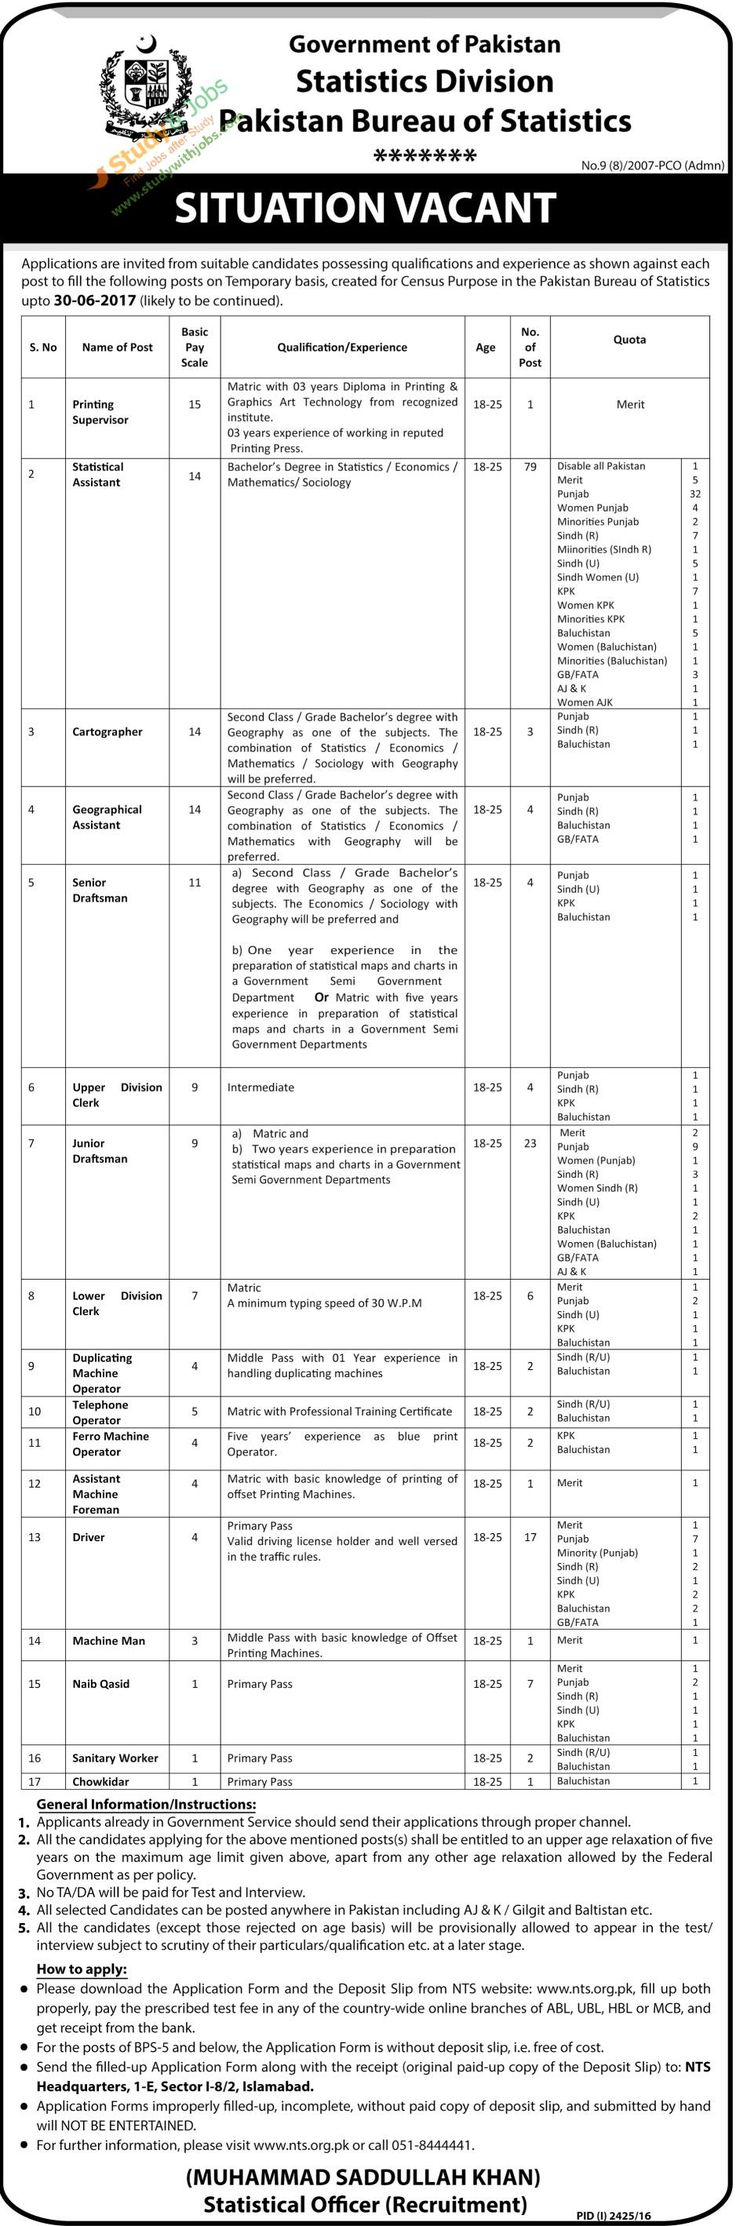 Govt Jobs in Statistics Division Pakistan Bureau of Statistics Government of Pakistan